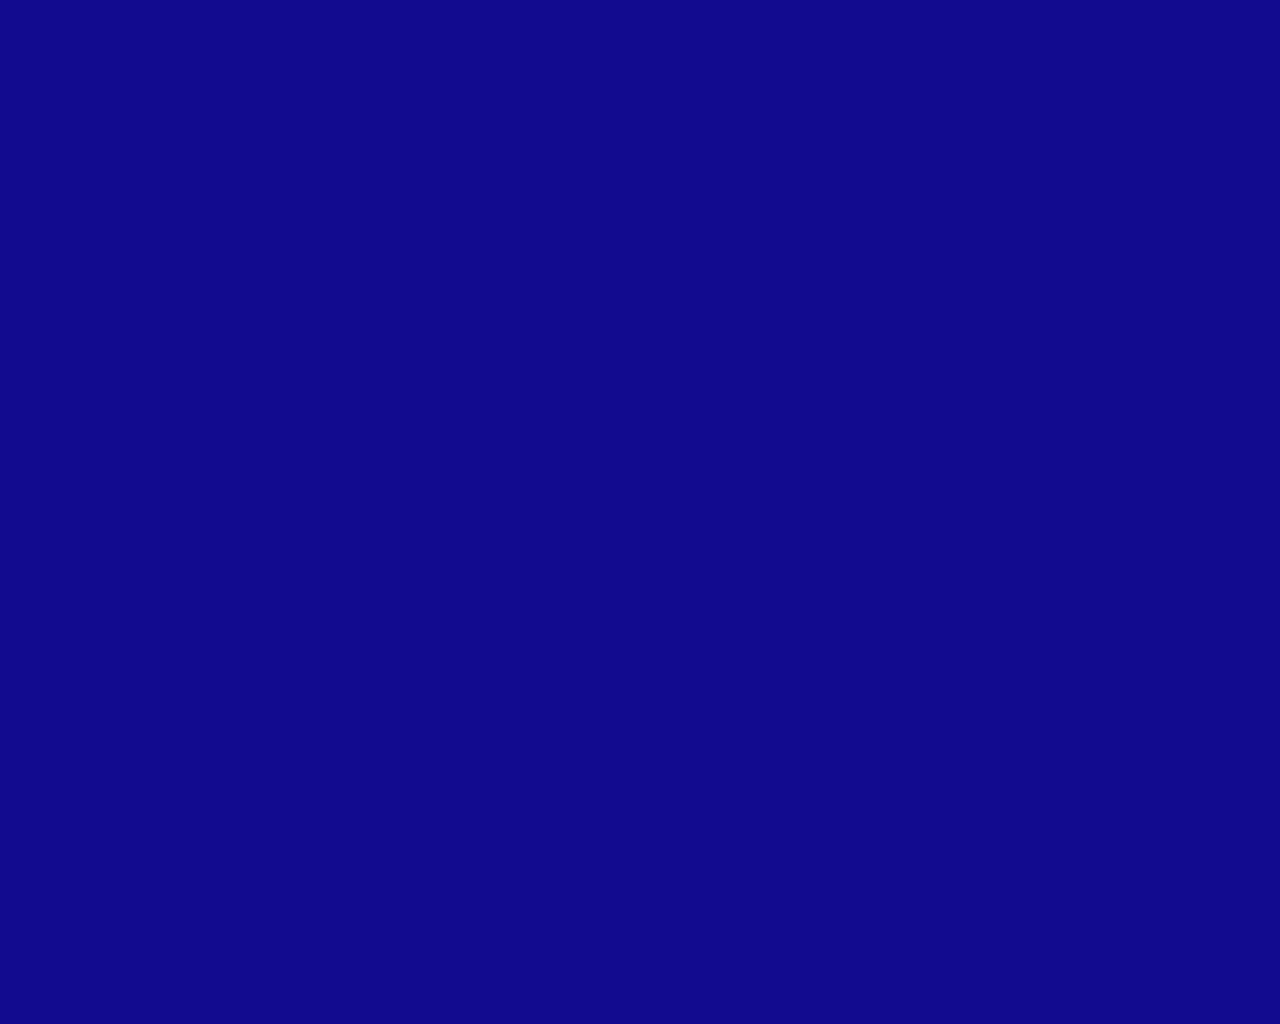 1280x1024 Ultramarine Solid Color Background 1280x1024